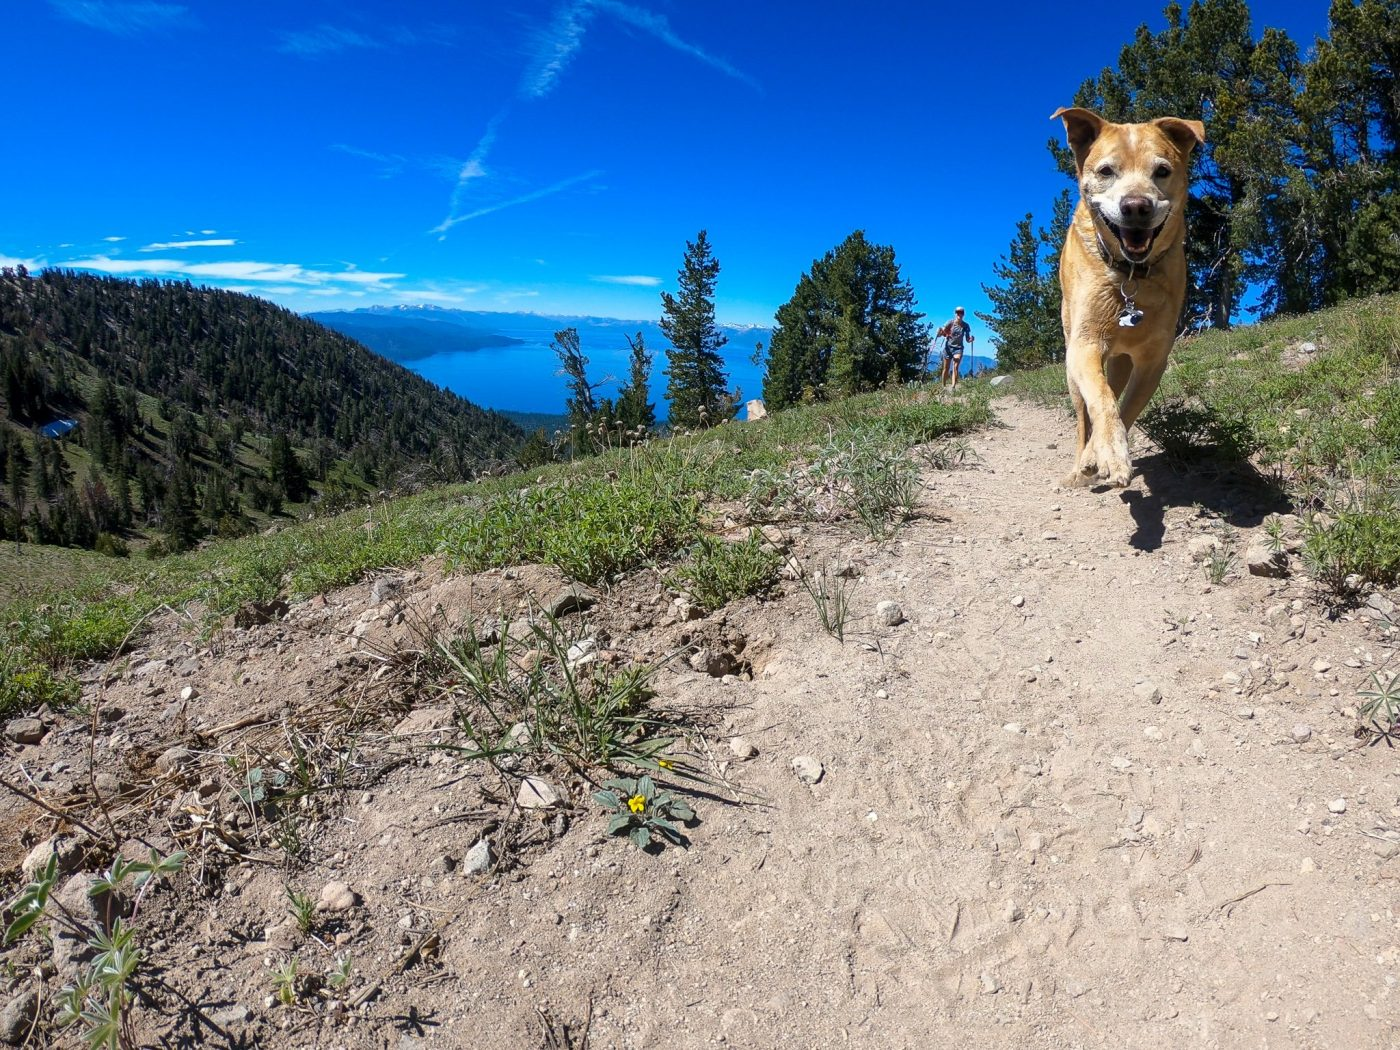 Lake tahoe and the PCT